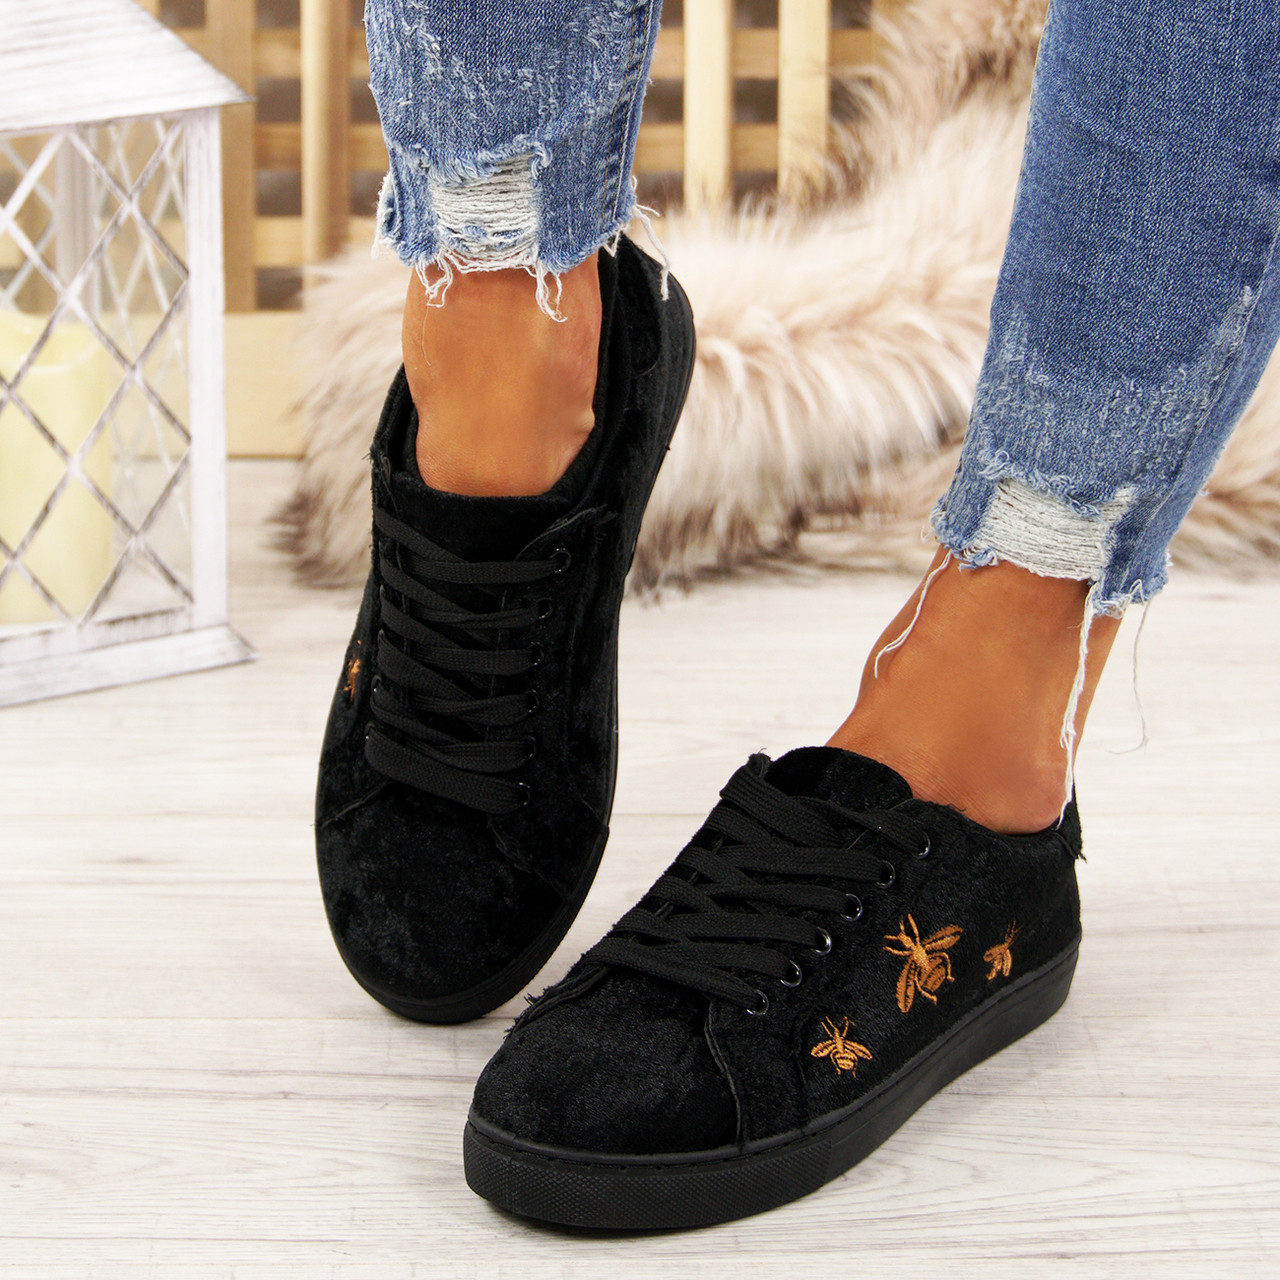 02e6ef21aac Womens Flat Comfy Trainers Plimsolls Pumps Lace-Up Casual Ladies Shoes Sizes